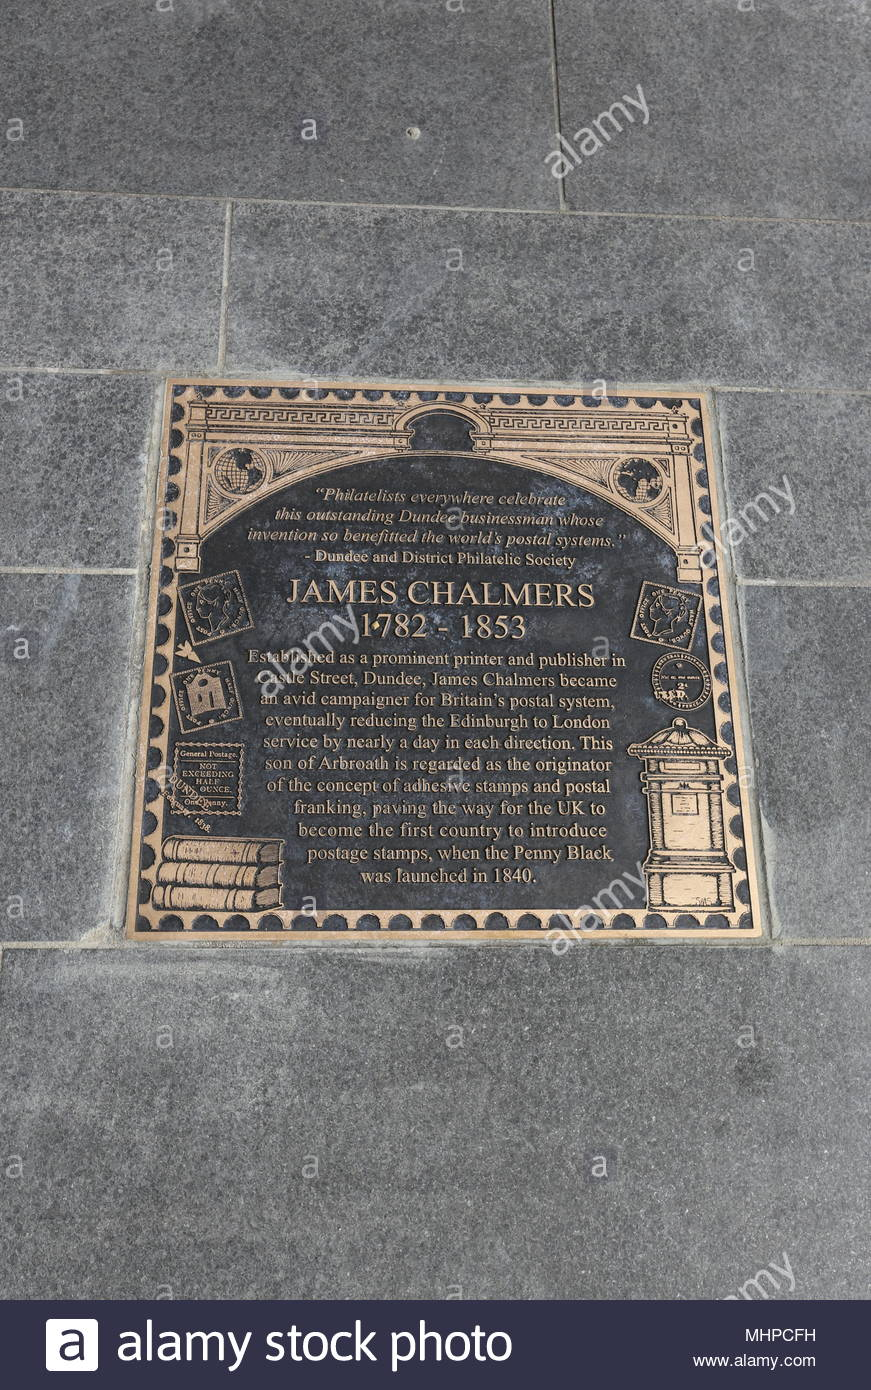 james chalmers plain truth